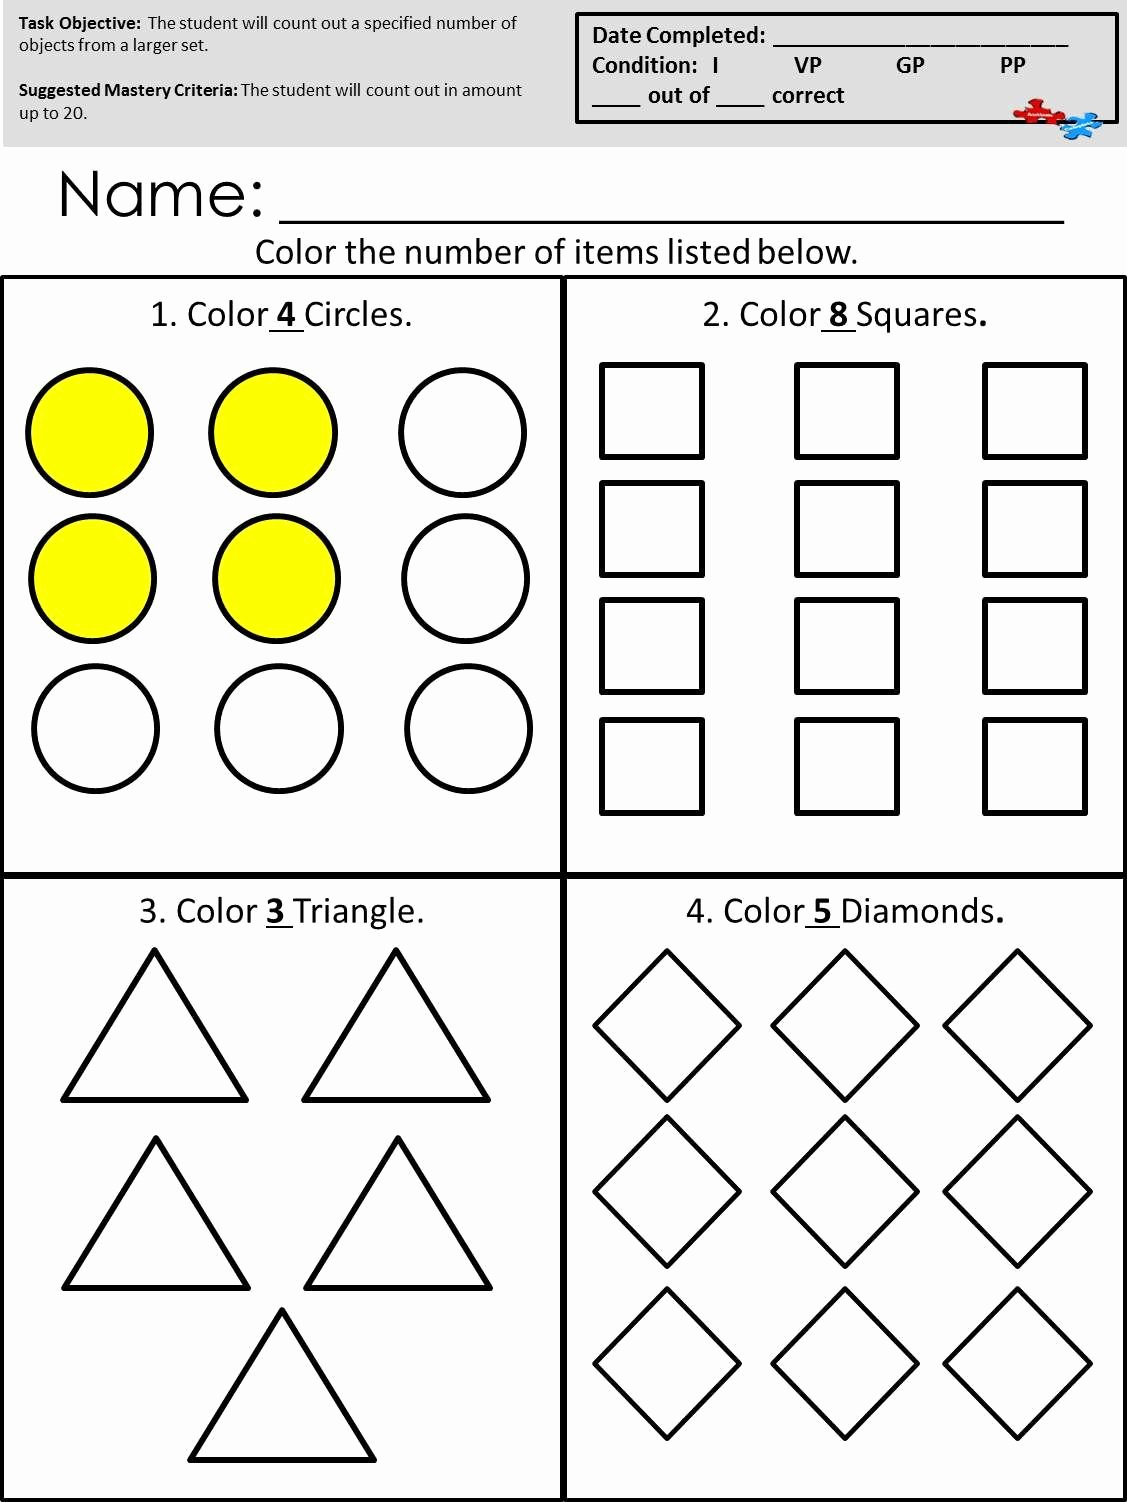 Math Worksheets for Autistic Students Ideas Count Out Objects From A Larger Set Available at